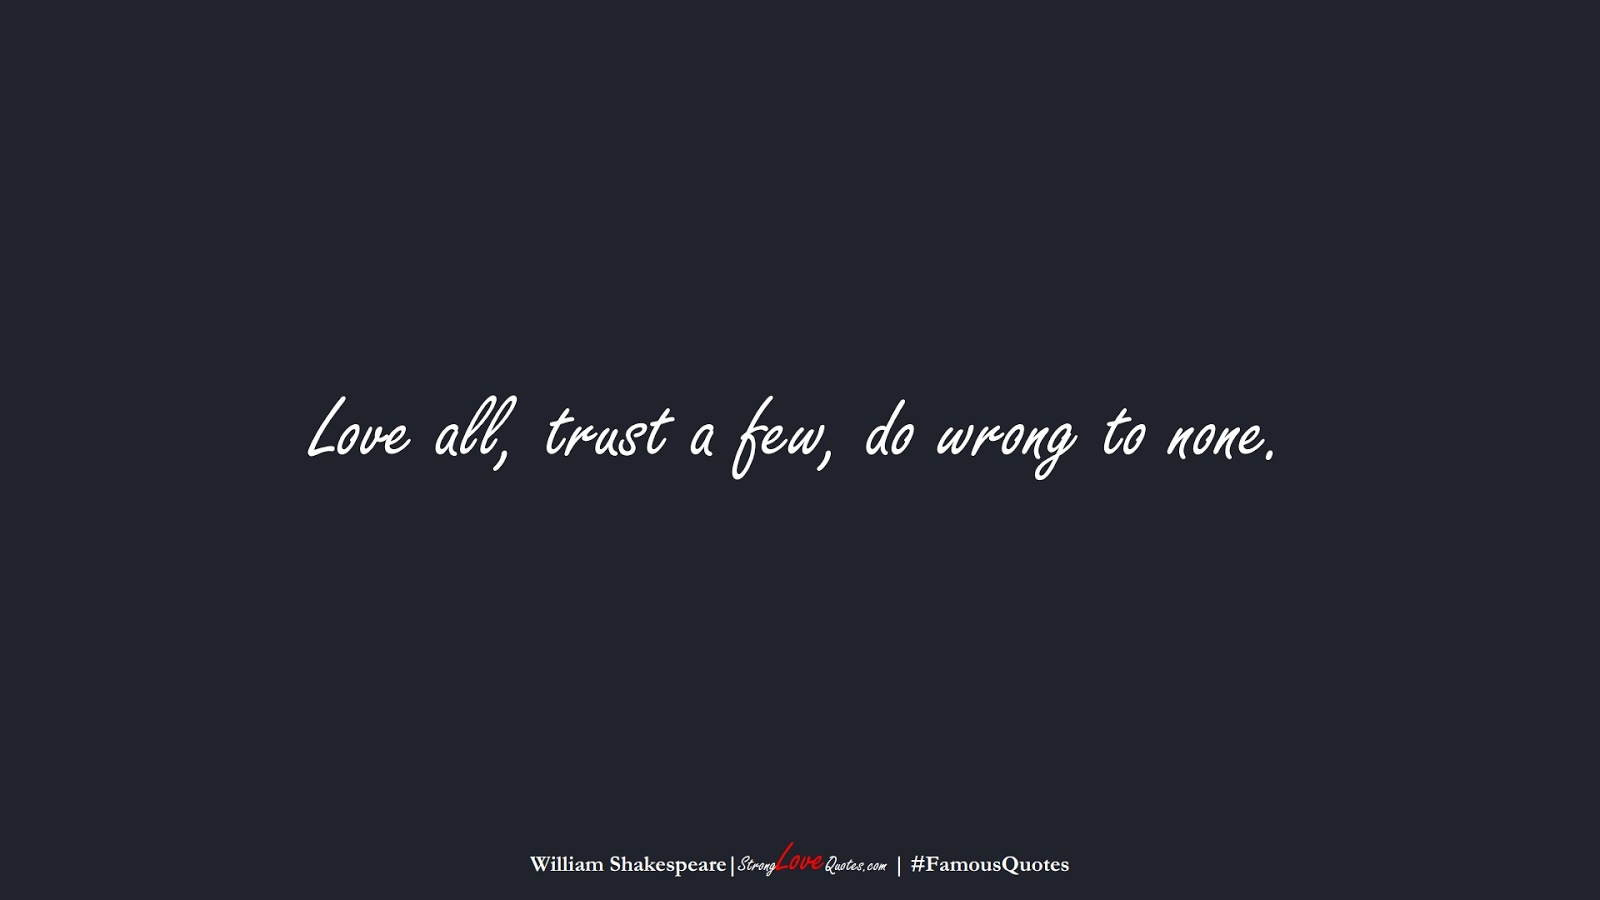 Love all, trust a few, do wrong to none. (William Shakespeare);  #FamousQuotes